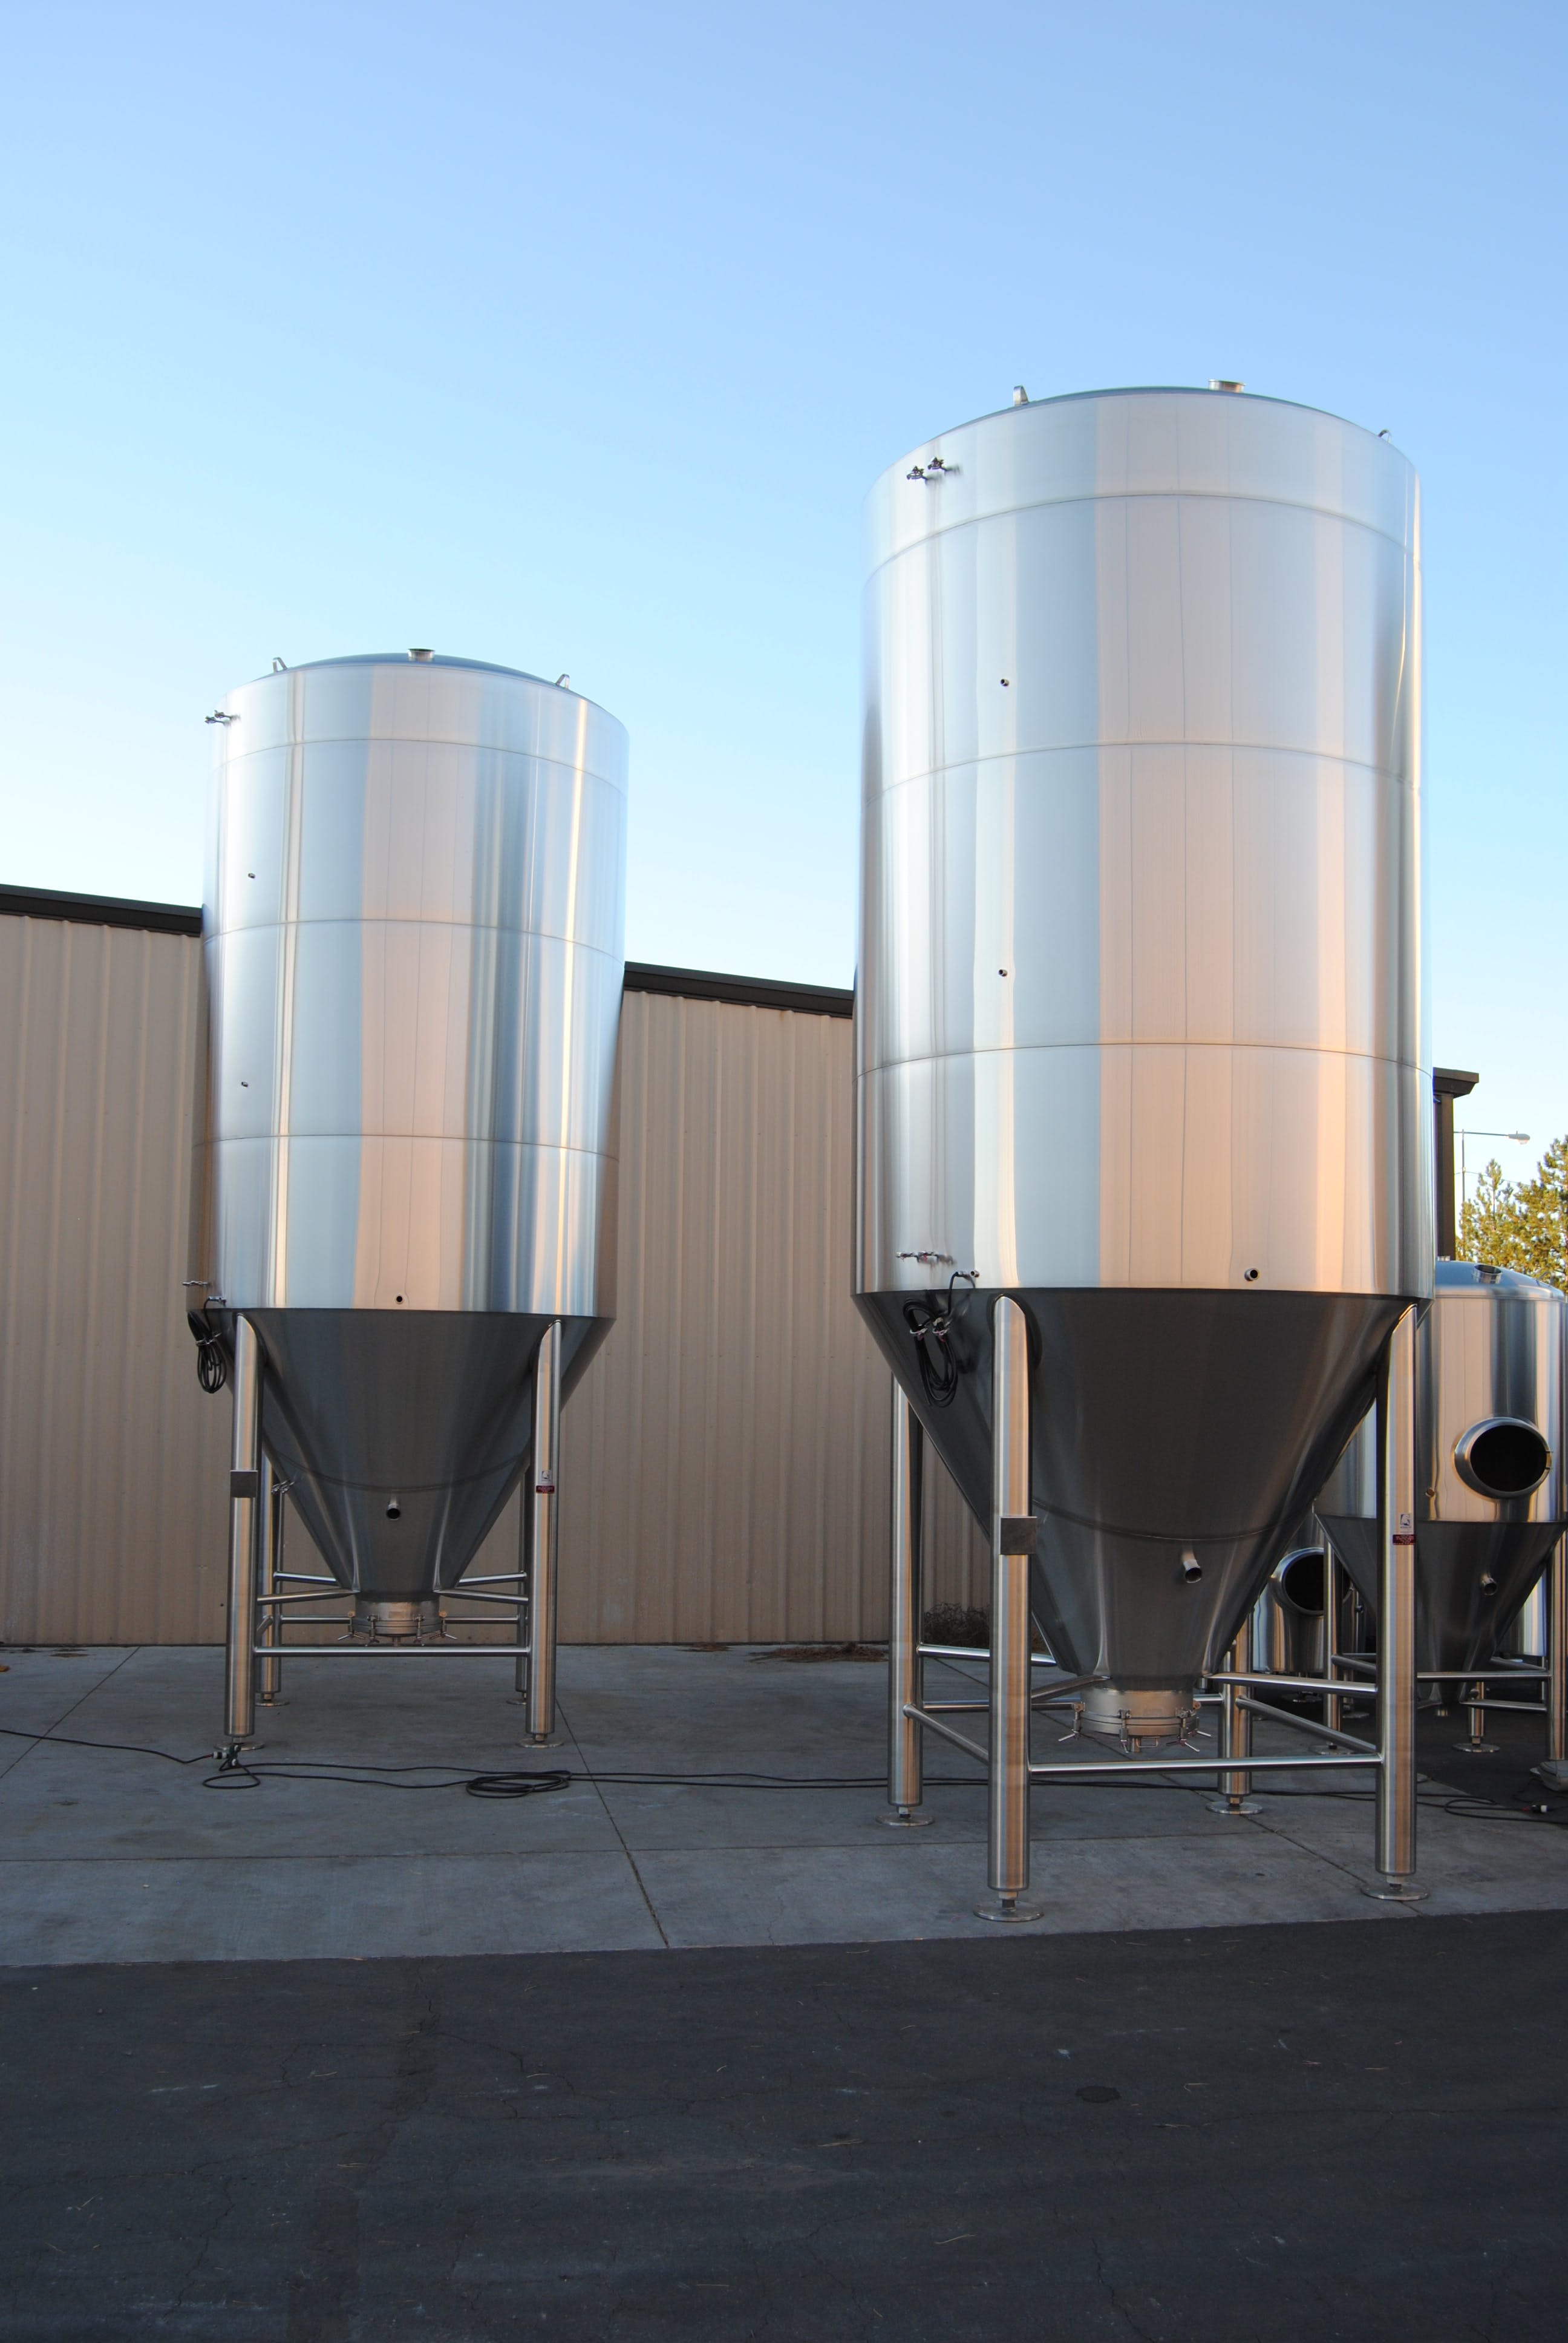 Fermenters, Brite tanks - sold by Silver State Stainless